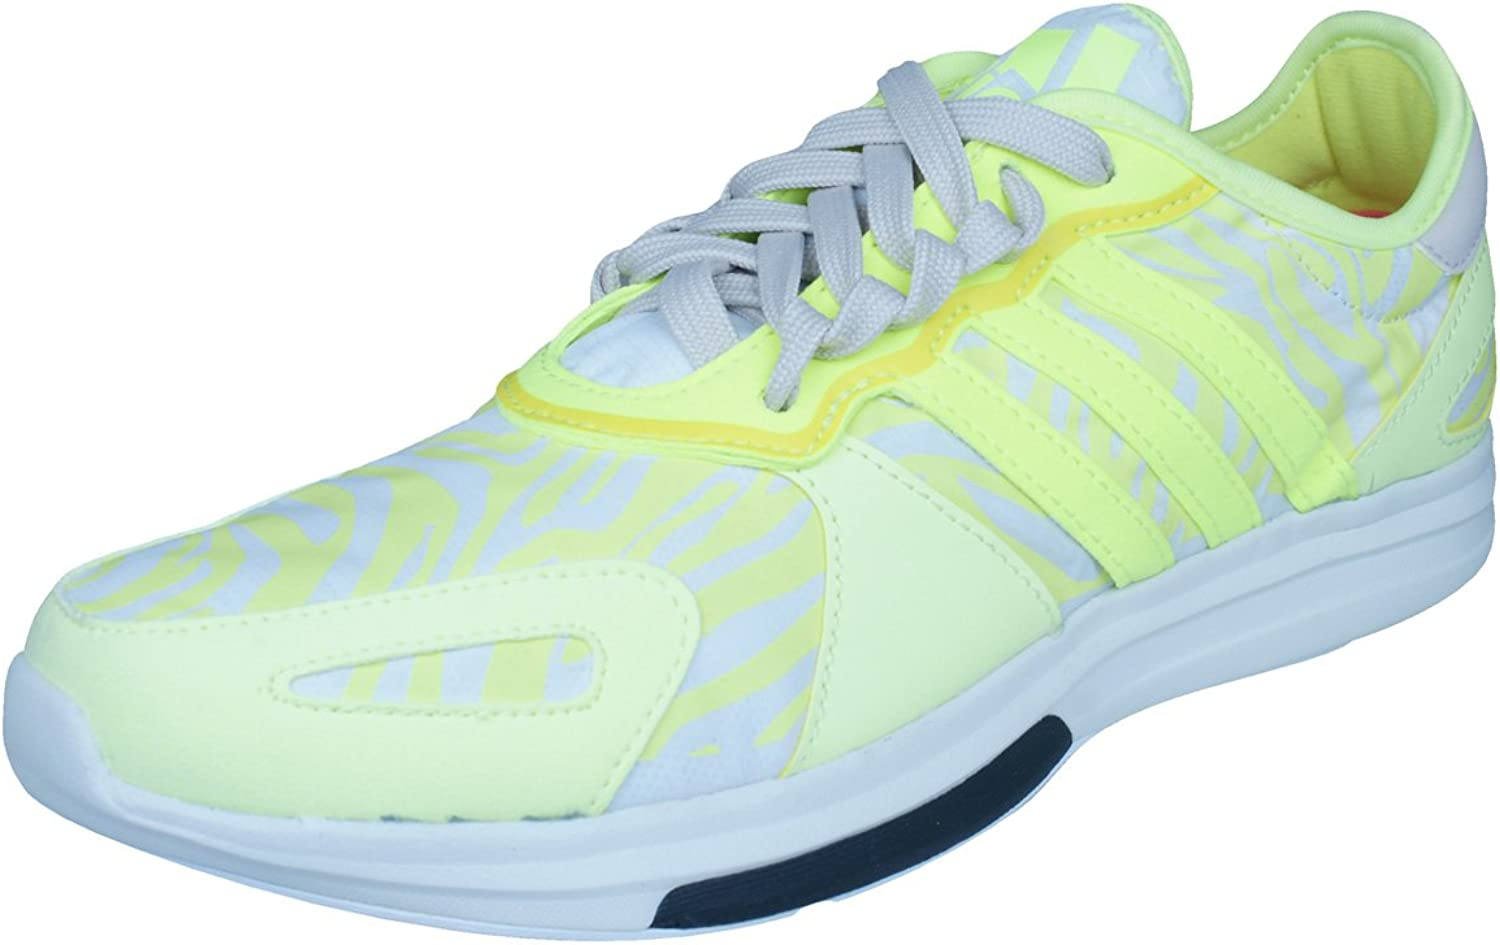 Adidas Stellasport Yvori by Stella McCartney Womens Fitness Sneakers shoes